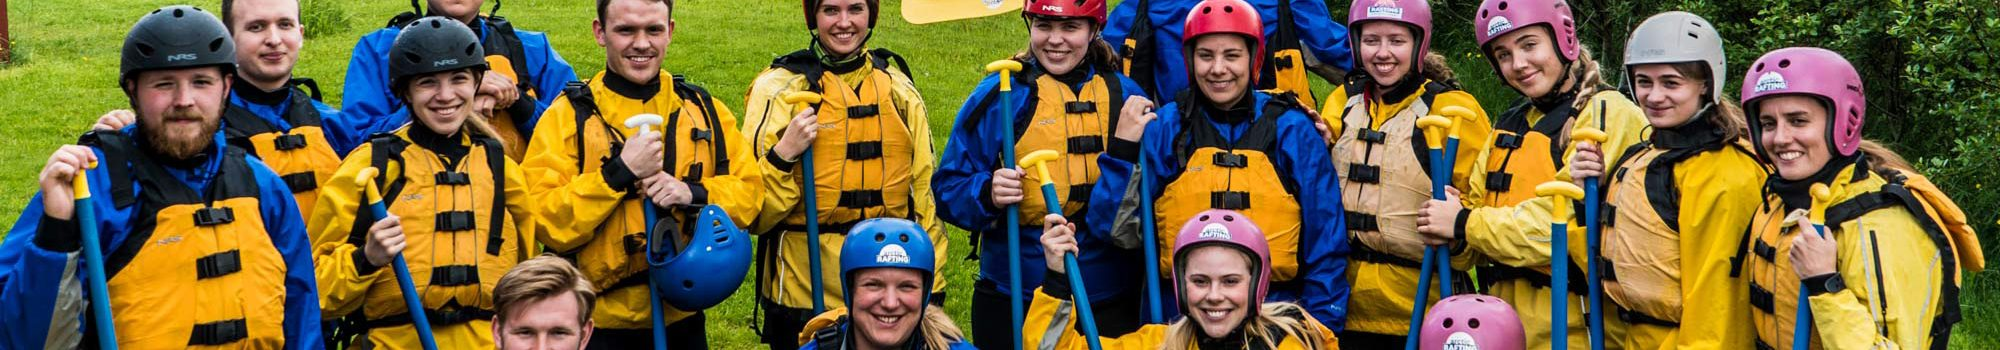 River rafting Iceland